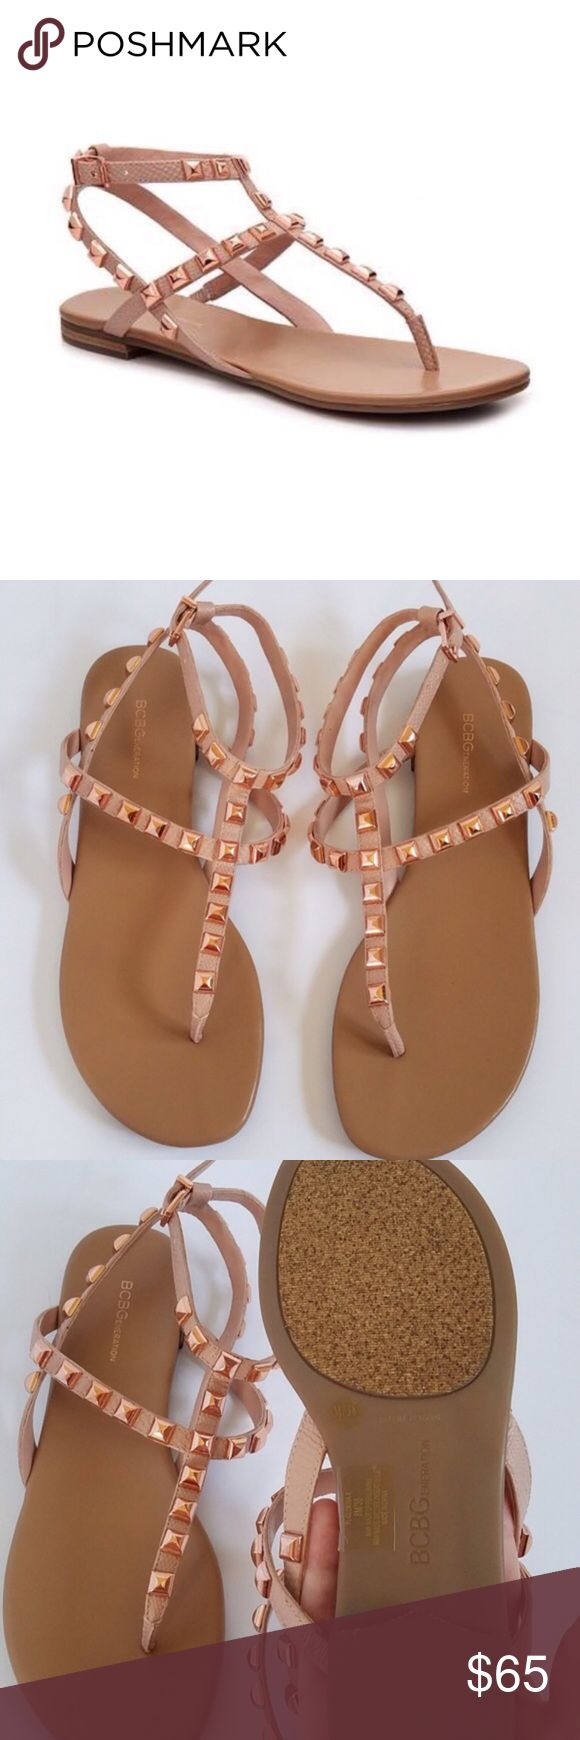 BCBGeneration Rose Gold Studded Sandals NWOB. Display shoe, no box. BCBGeneration Rose Gold studded sandal. Size 8. No rips, tears, stains. No Trades! All Reasonable Offers Accepted! BCBGeneration Shoes Sandals